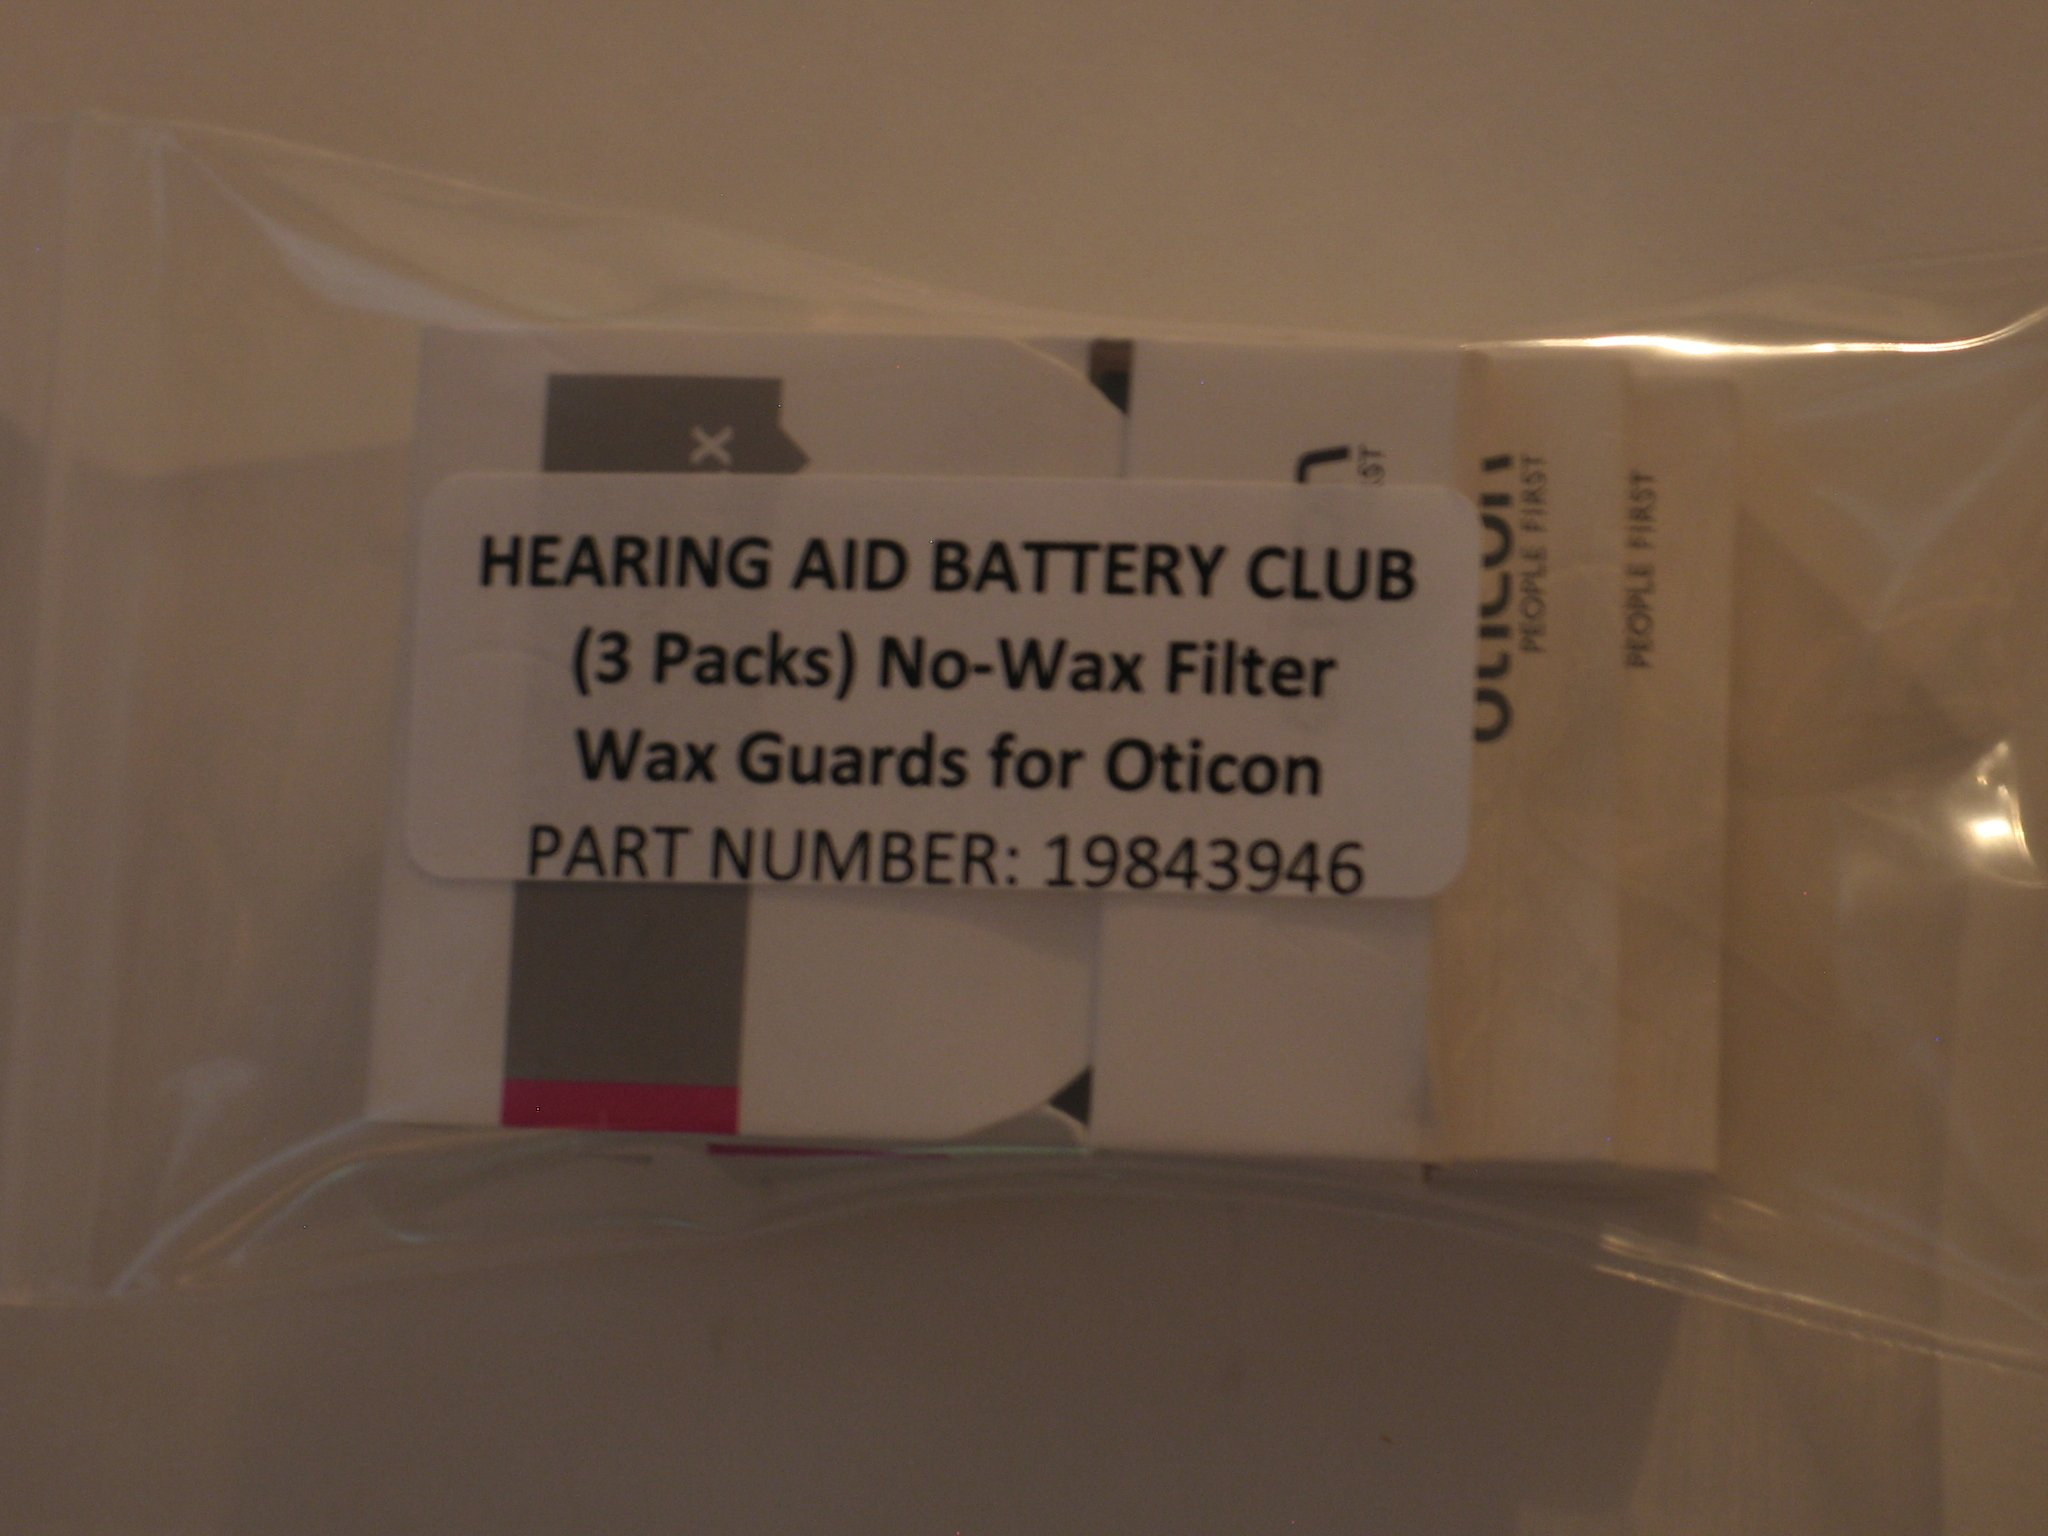 (3 Packs) Oticon No-Wax - Wax Guard, for Oticon by Hearing Aid Battery Club